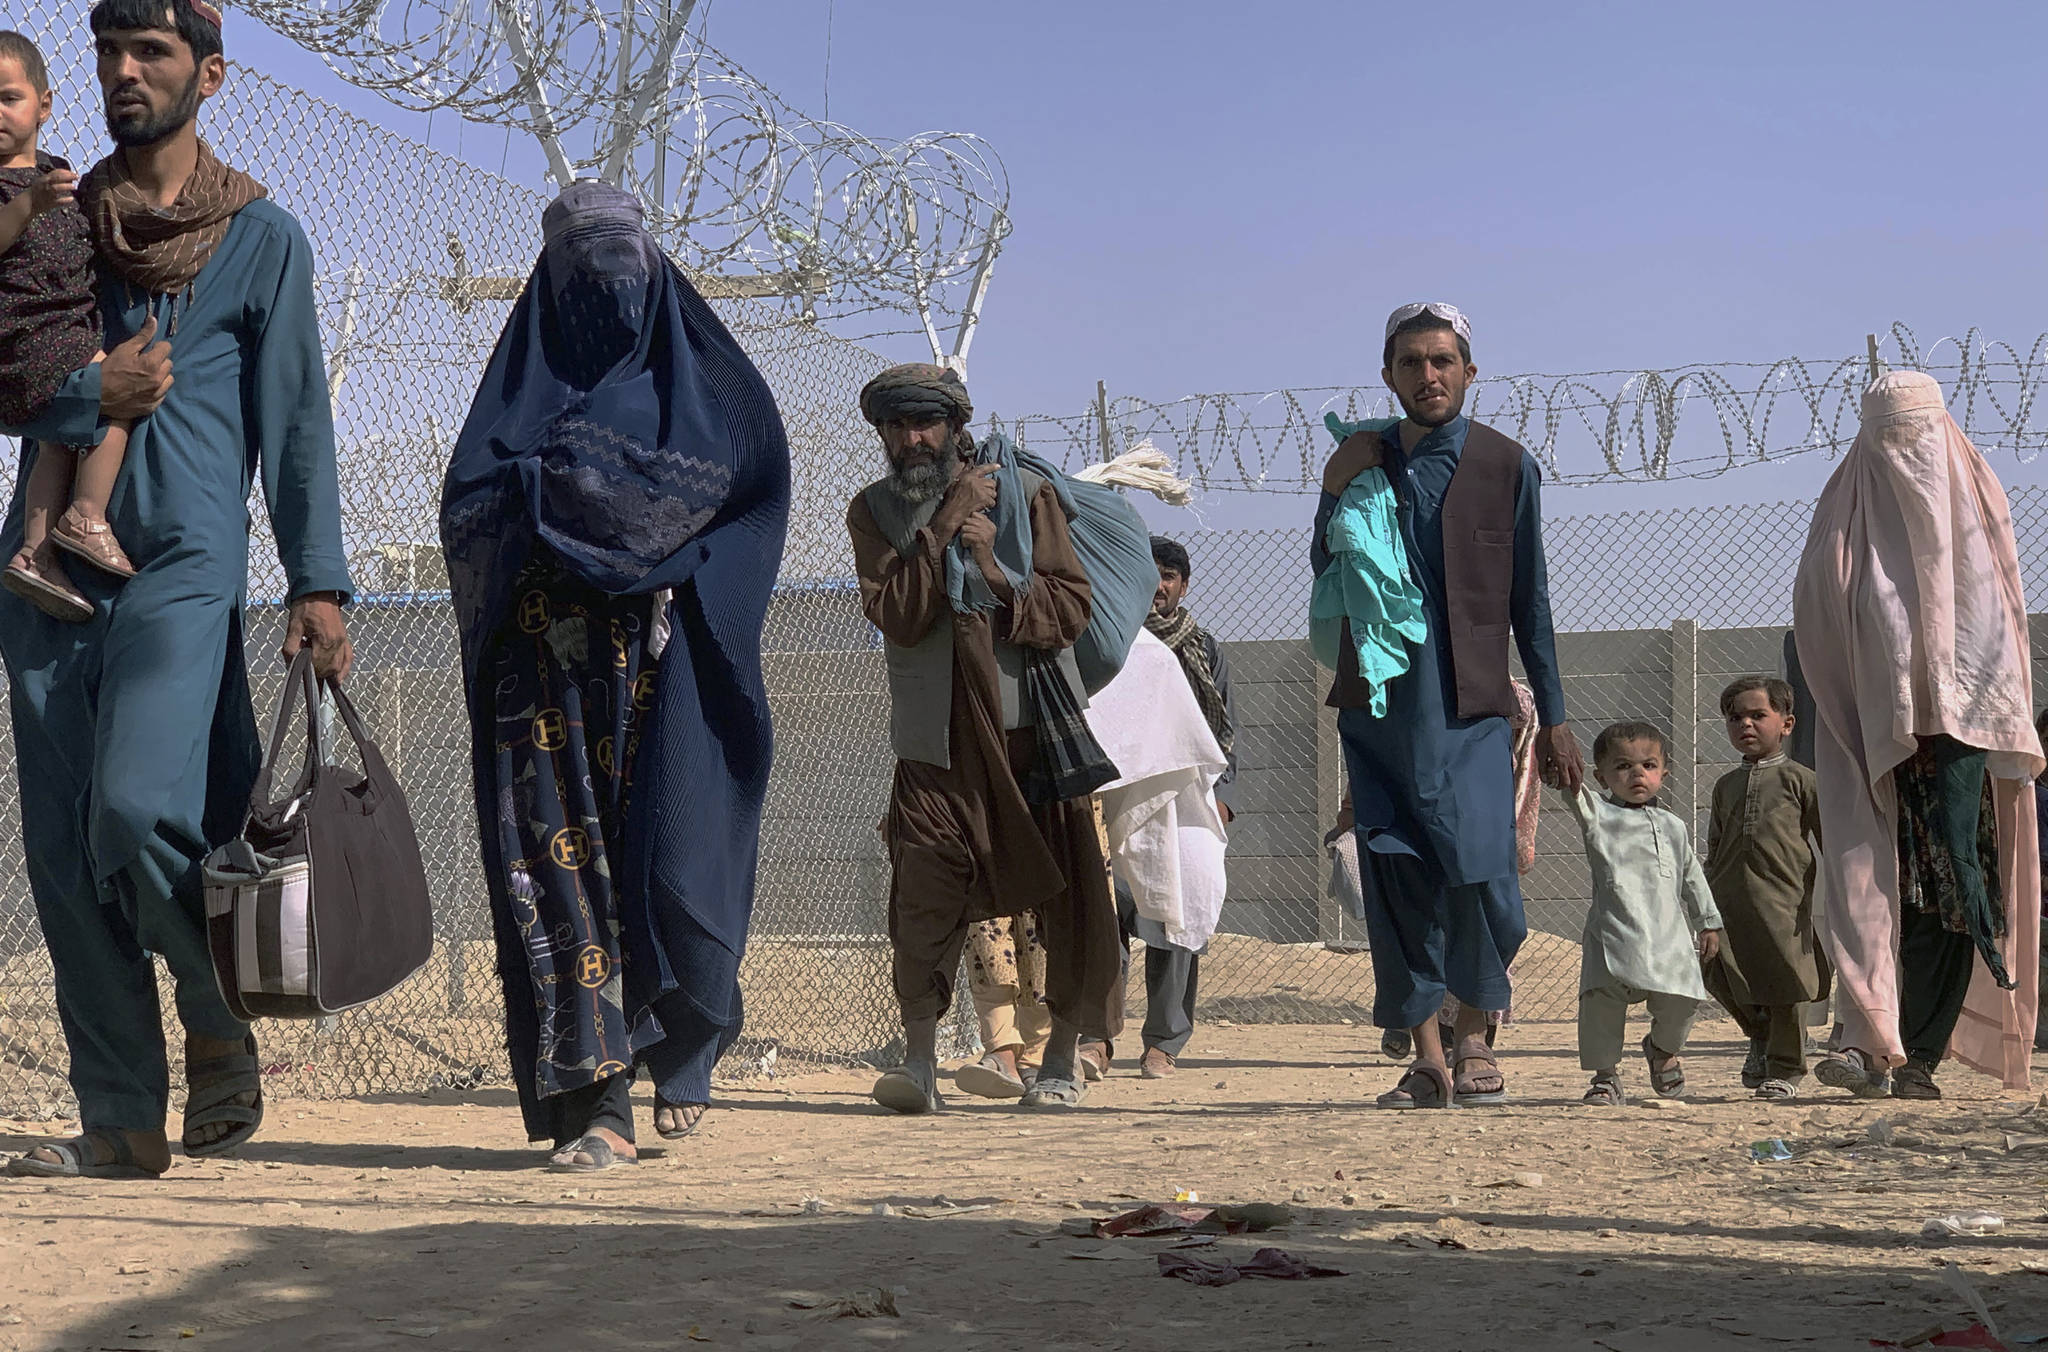 Afghans walk through a security barrier as they enter Pakistan through a common border crossing point in Chaman, Pakistan, Thursday, Aug. 26, 2021. Hundreds of Pakistanis and Afghans cross the border daily through Chaman to visit relatives, receive medical treatment and for business-related activities. Pakistani has not placed any curbs on their movement despite recent evacuations from Kabul. (AP Photo)